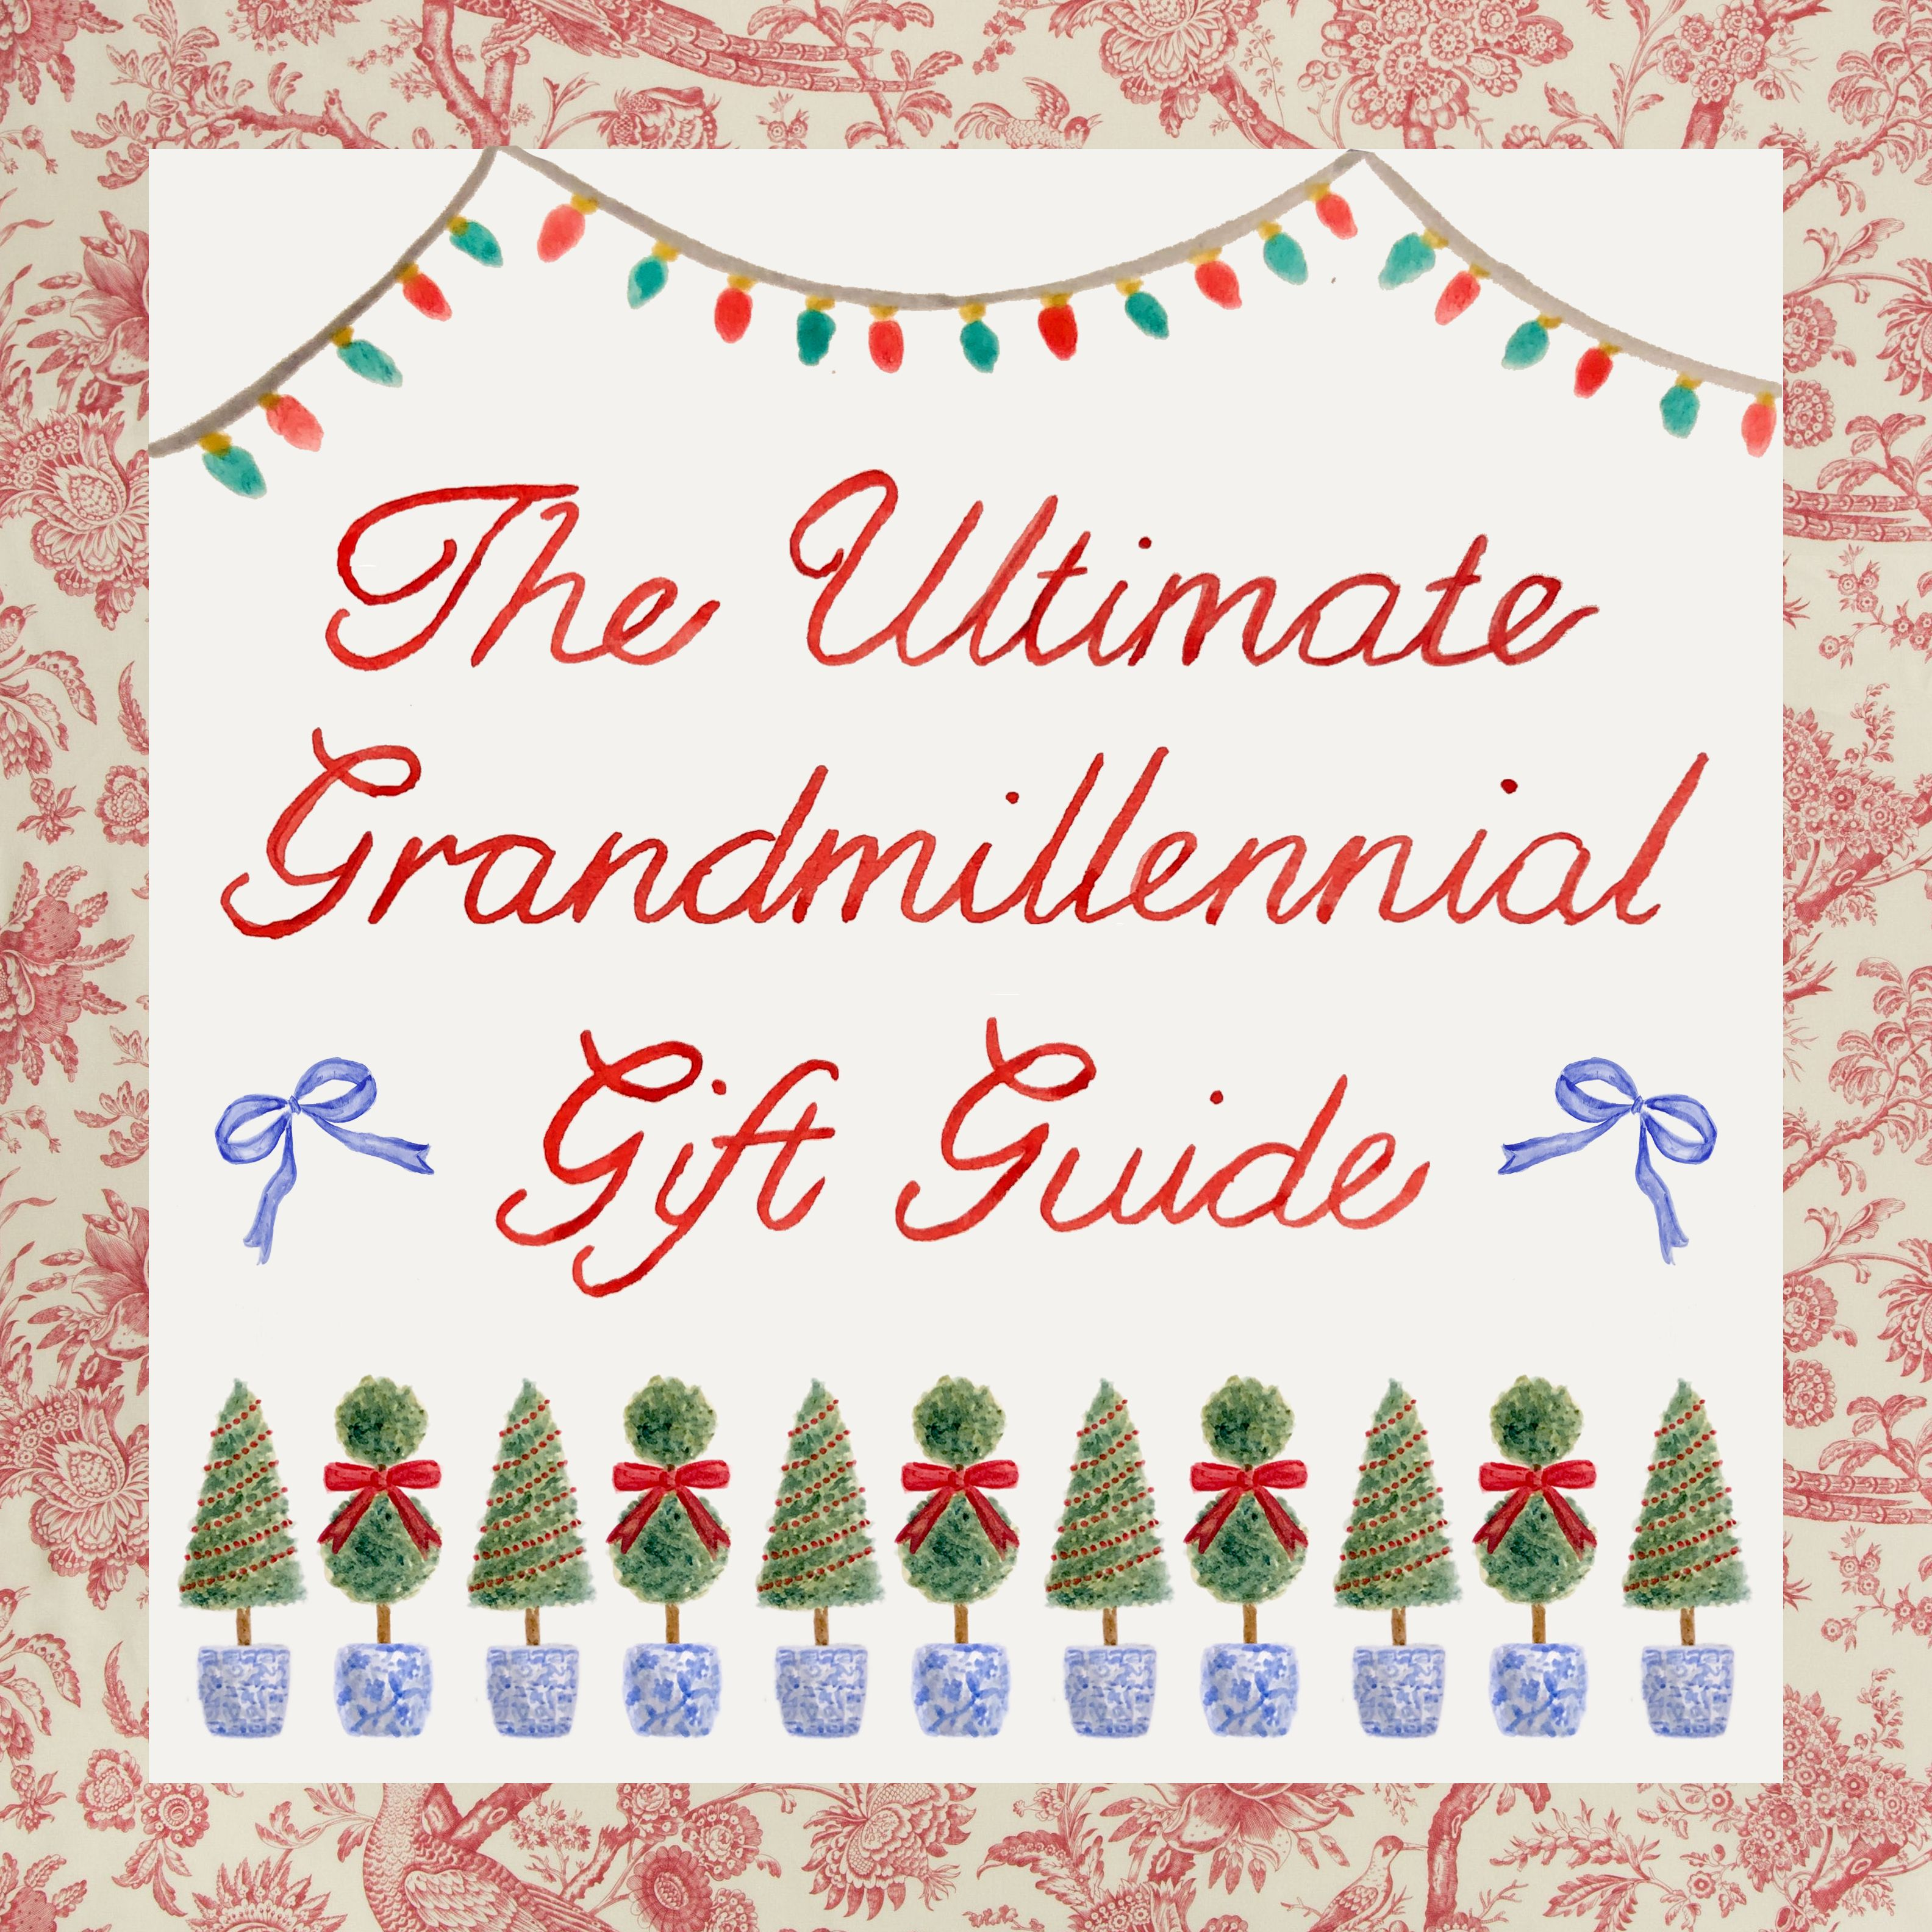 The Ultimate Grandmillennial Gift Guide